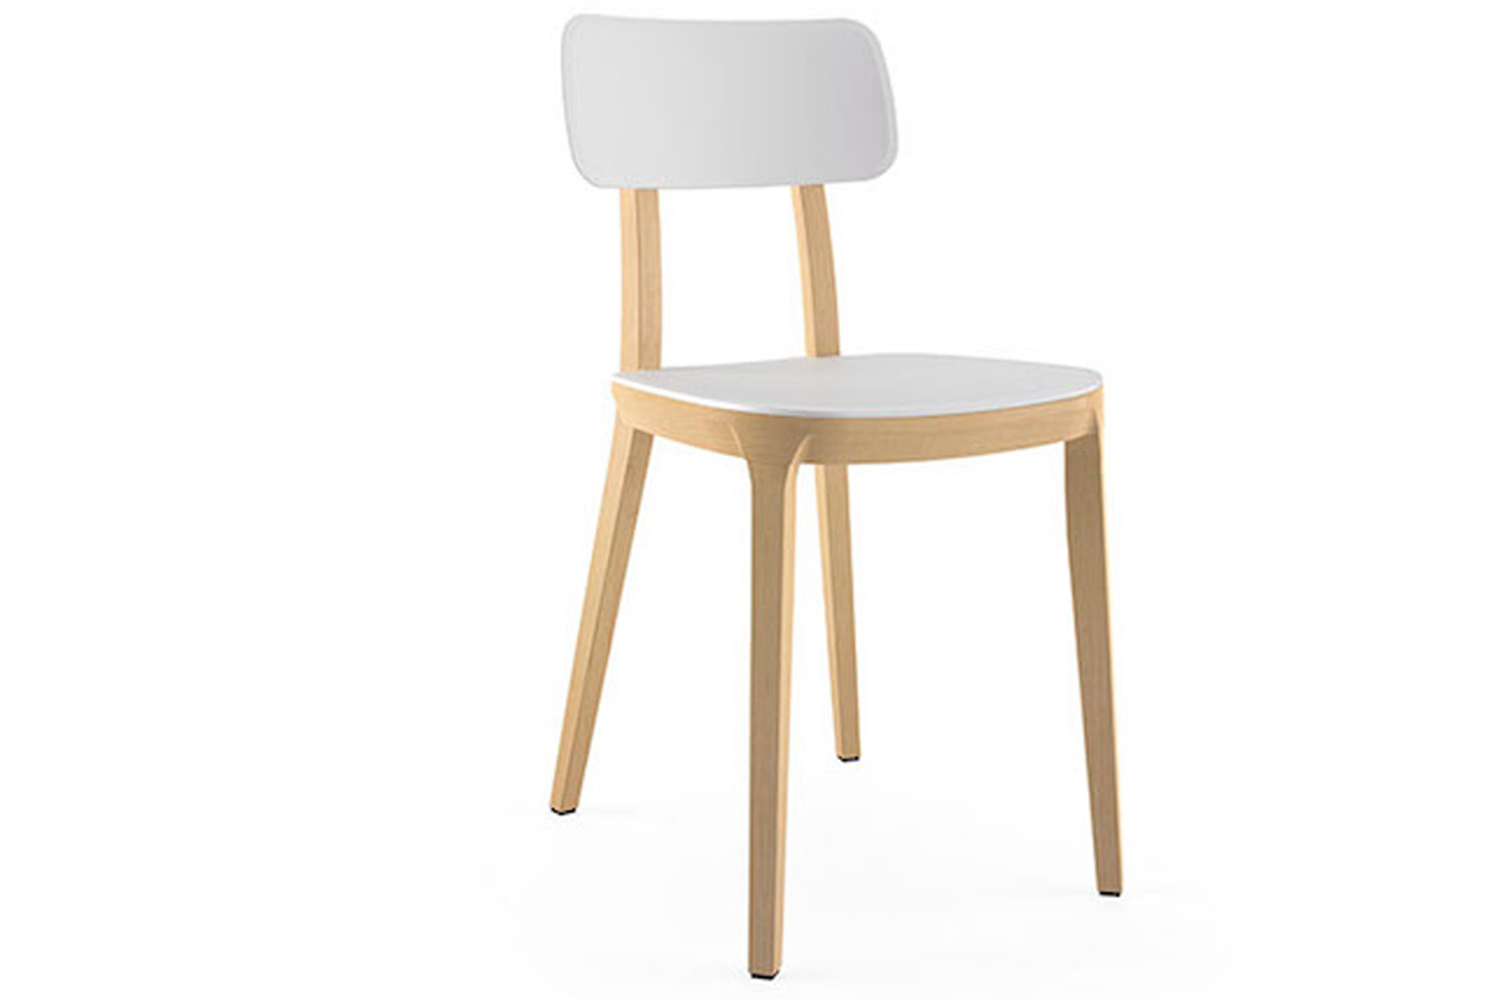 It is available in four options: chair, bar stool, counter-height stool and lounge.